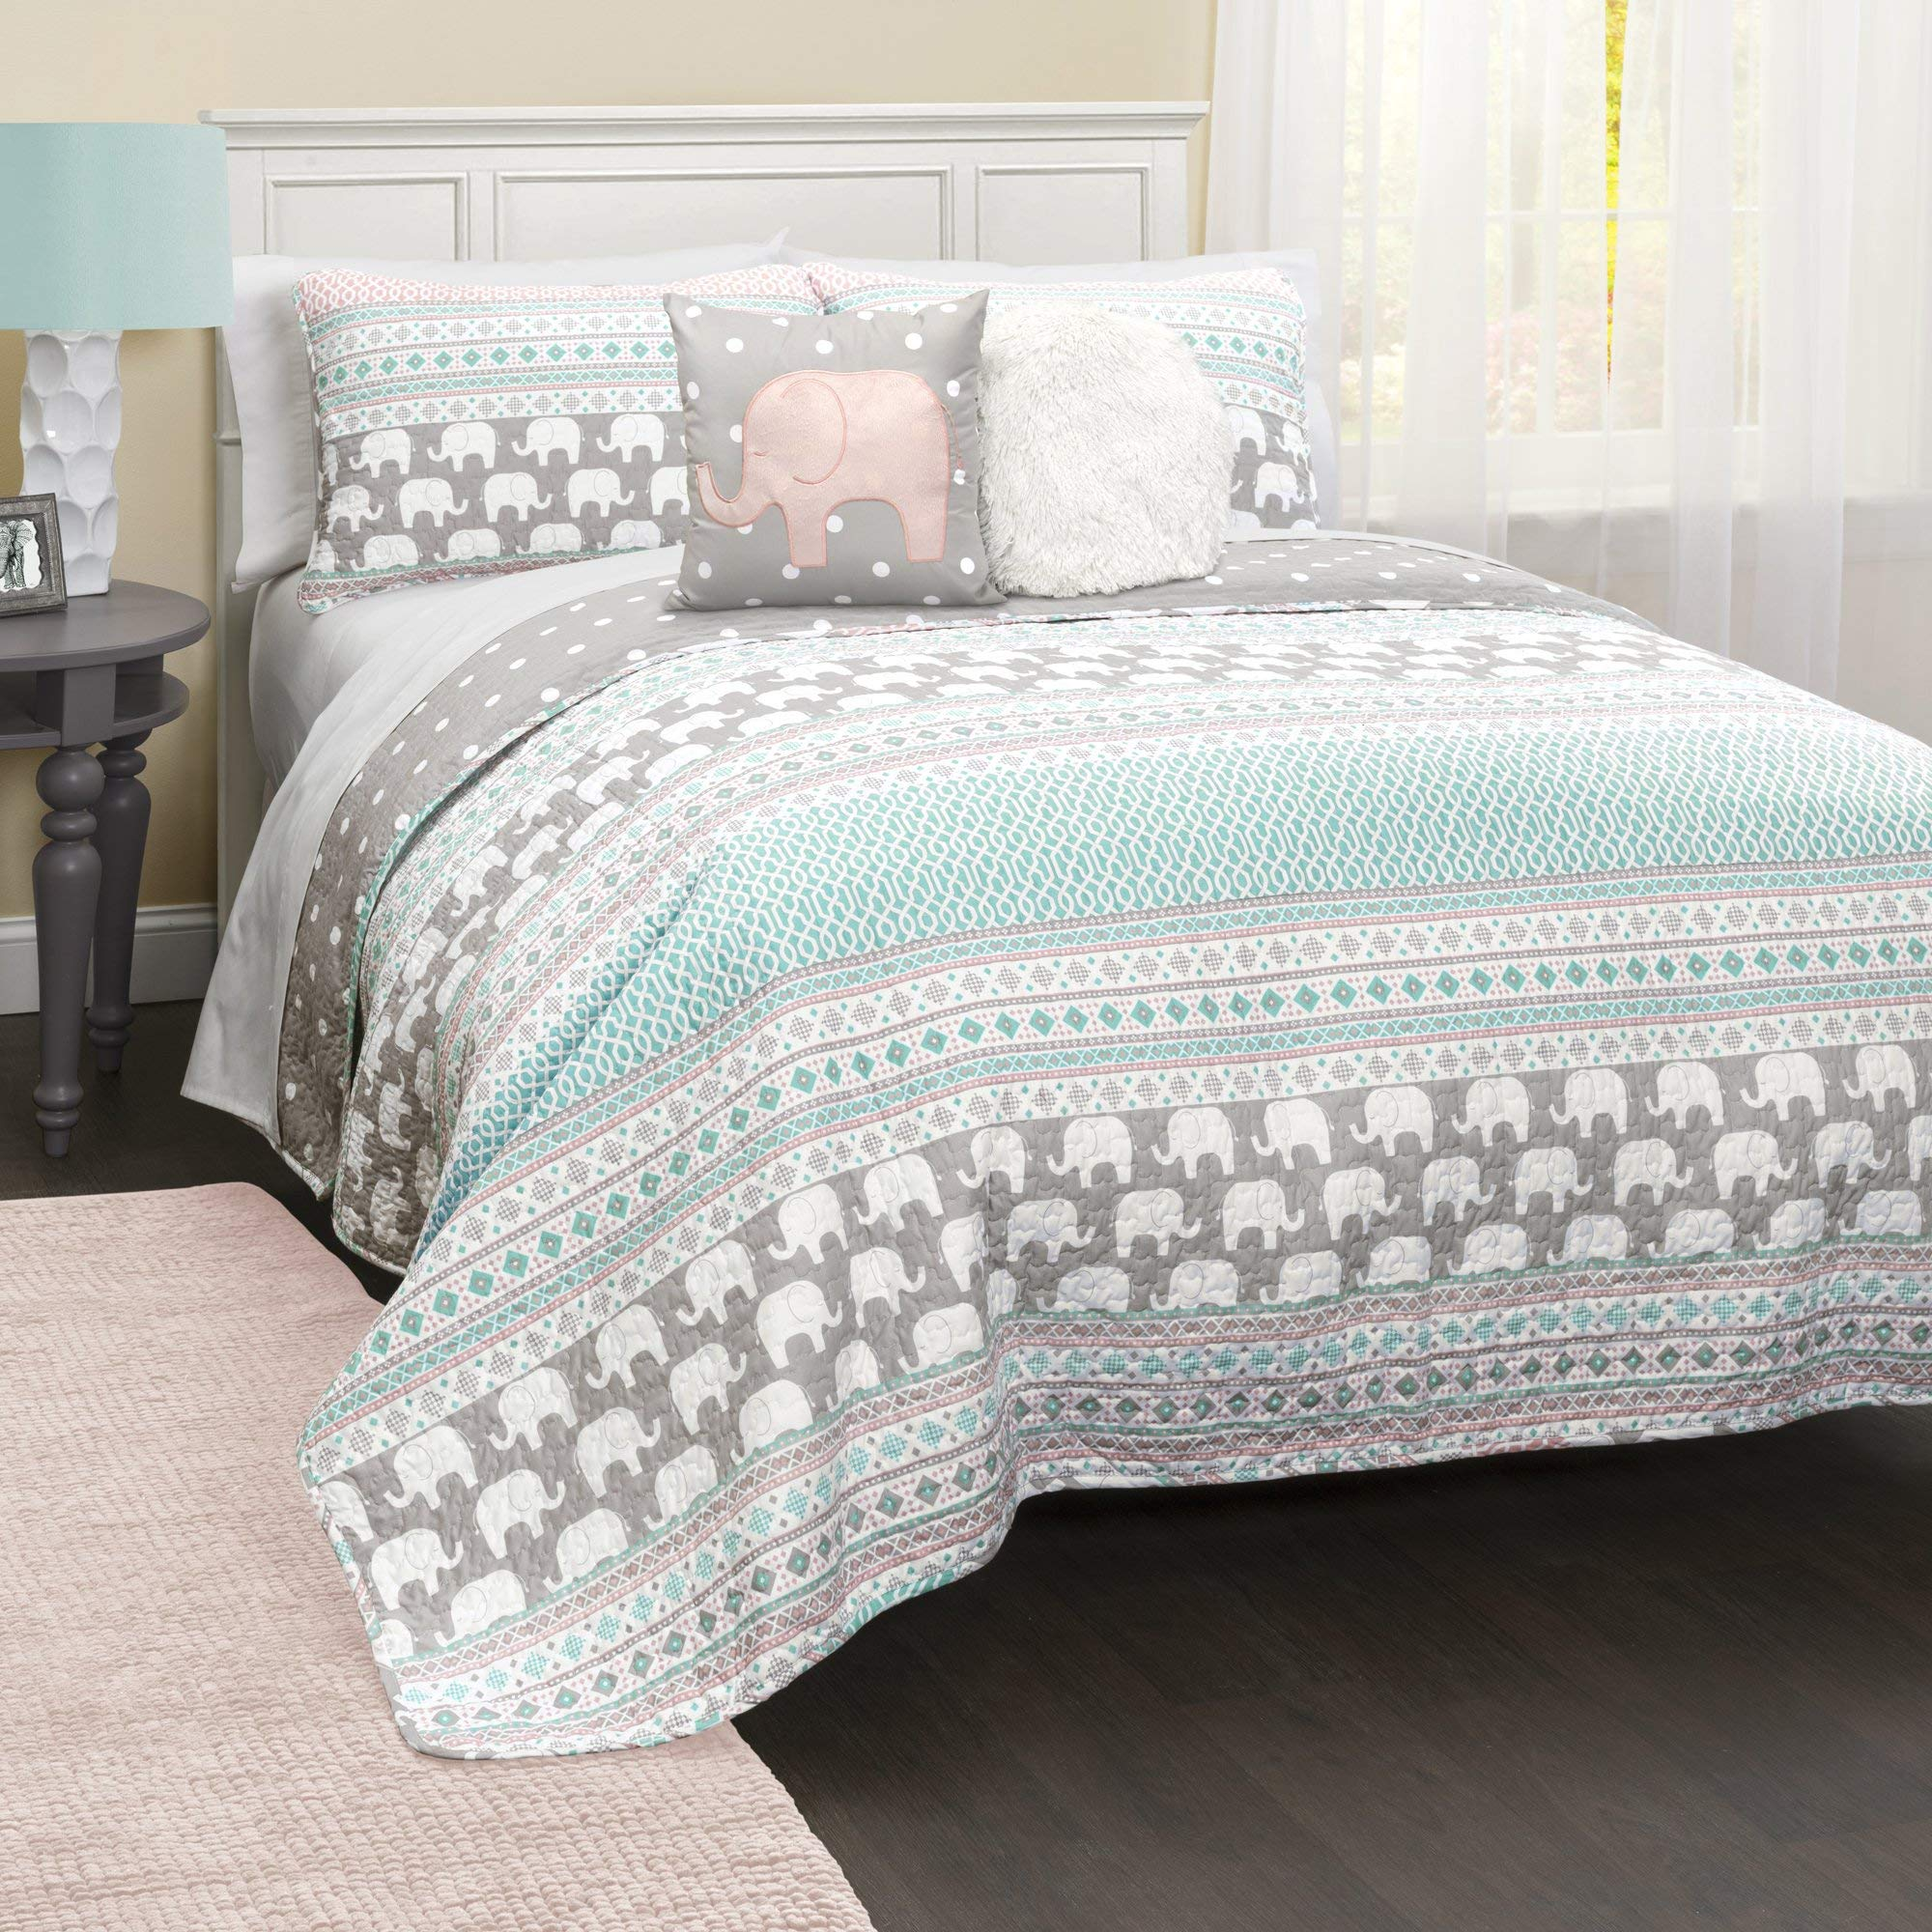 Lush Decor Elephant Striped Quilt Reversible 5 Piece Bedding Set, Full/Queen, Turquoise & Pink by Lush Decor